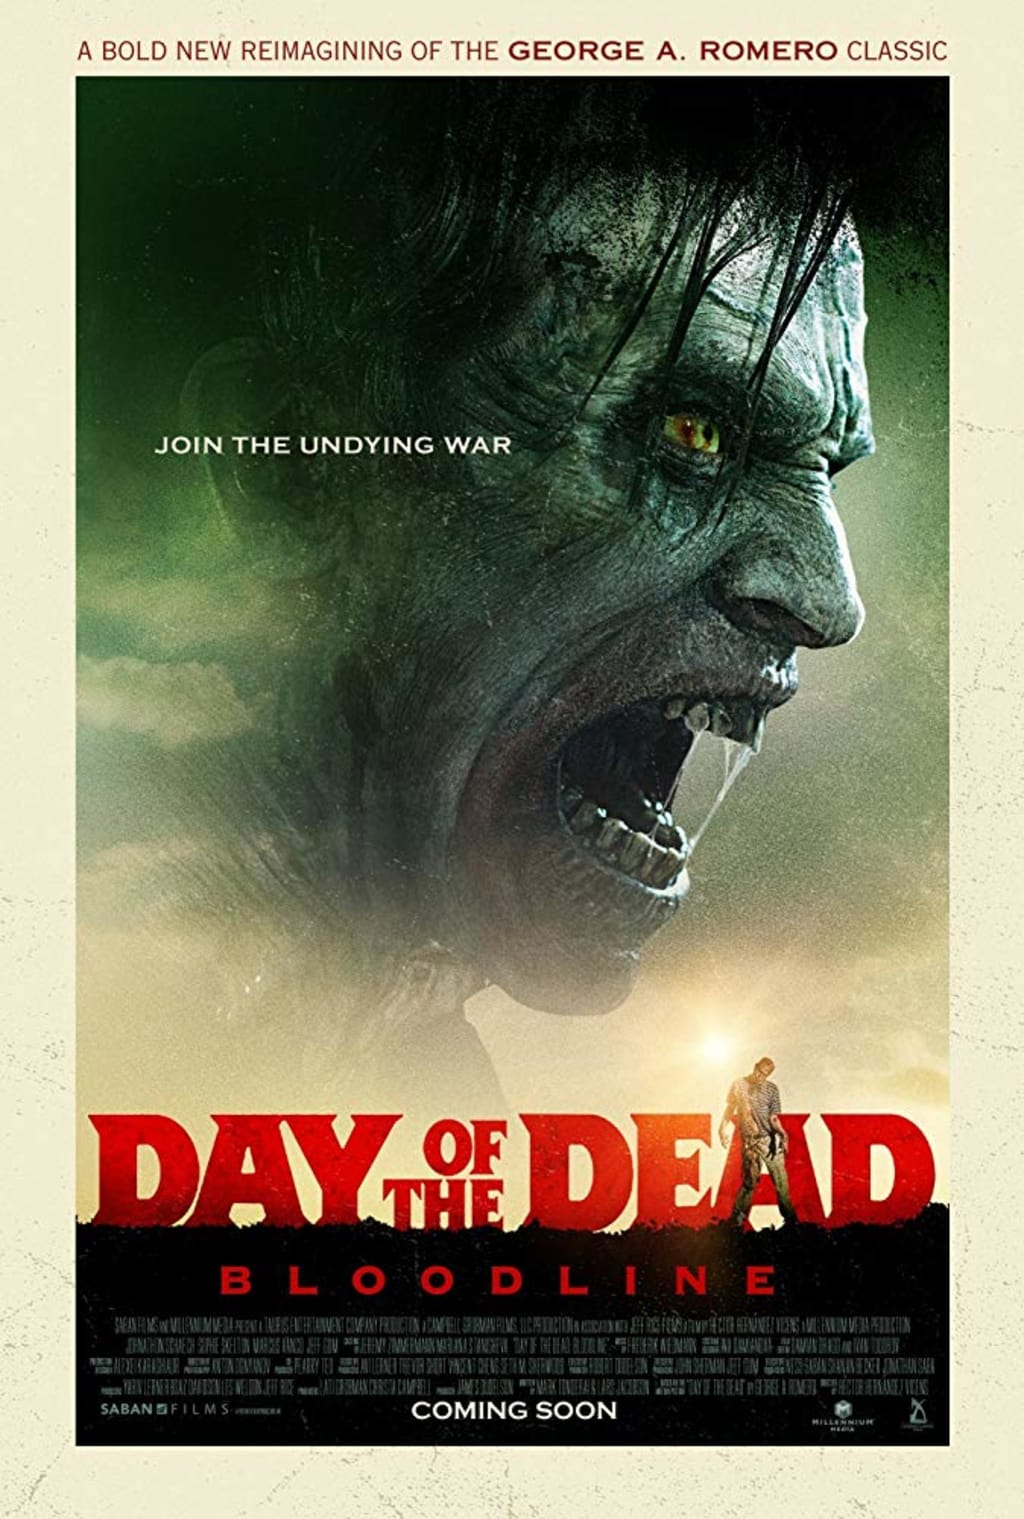 Reed Alexander's Horror Review Shit's All Over 'Day of the Dead: Bloodlines' (2018)